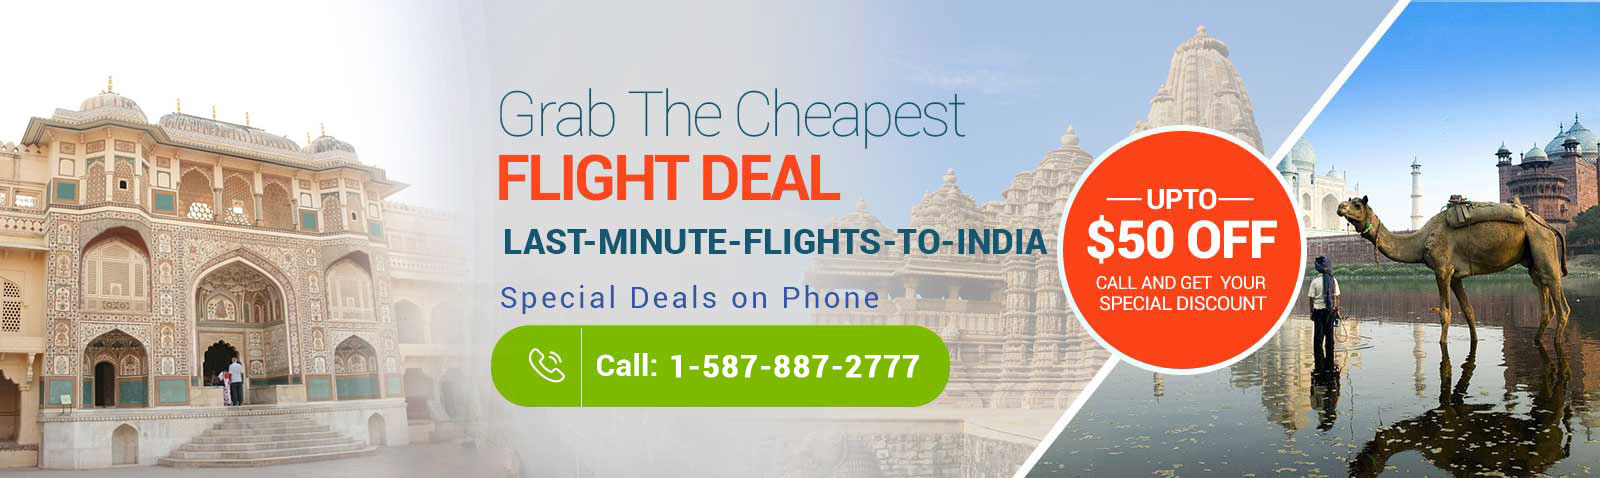 bookmyseat_deal-banner